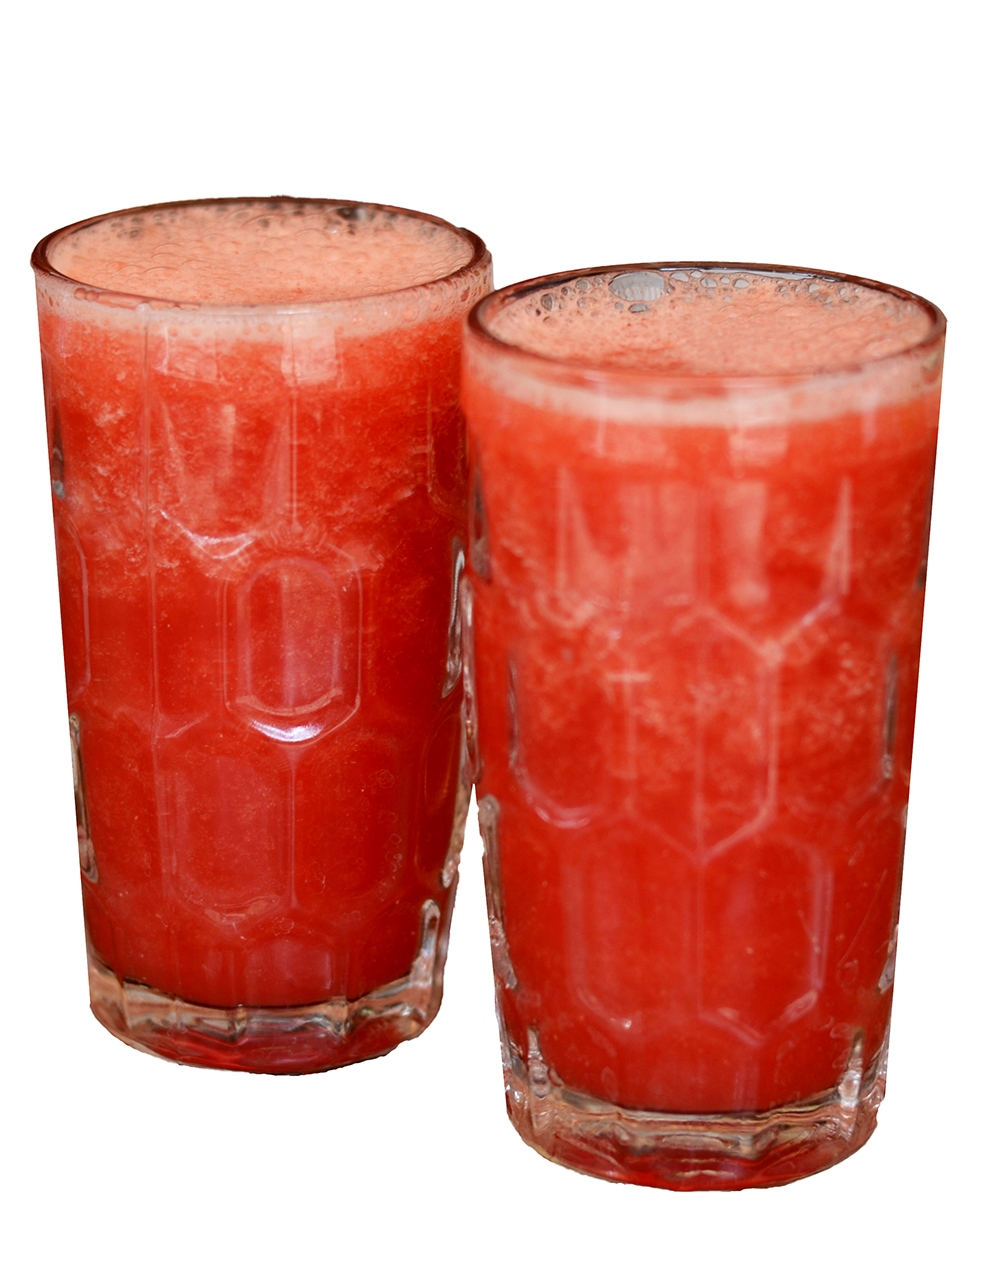 File:Watermelon Juice.jpg - Wikipedia, the free encyclopedia